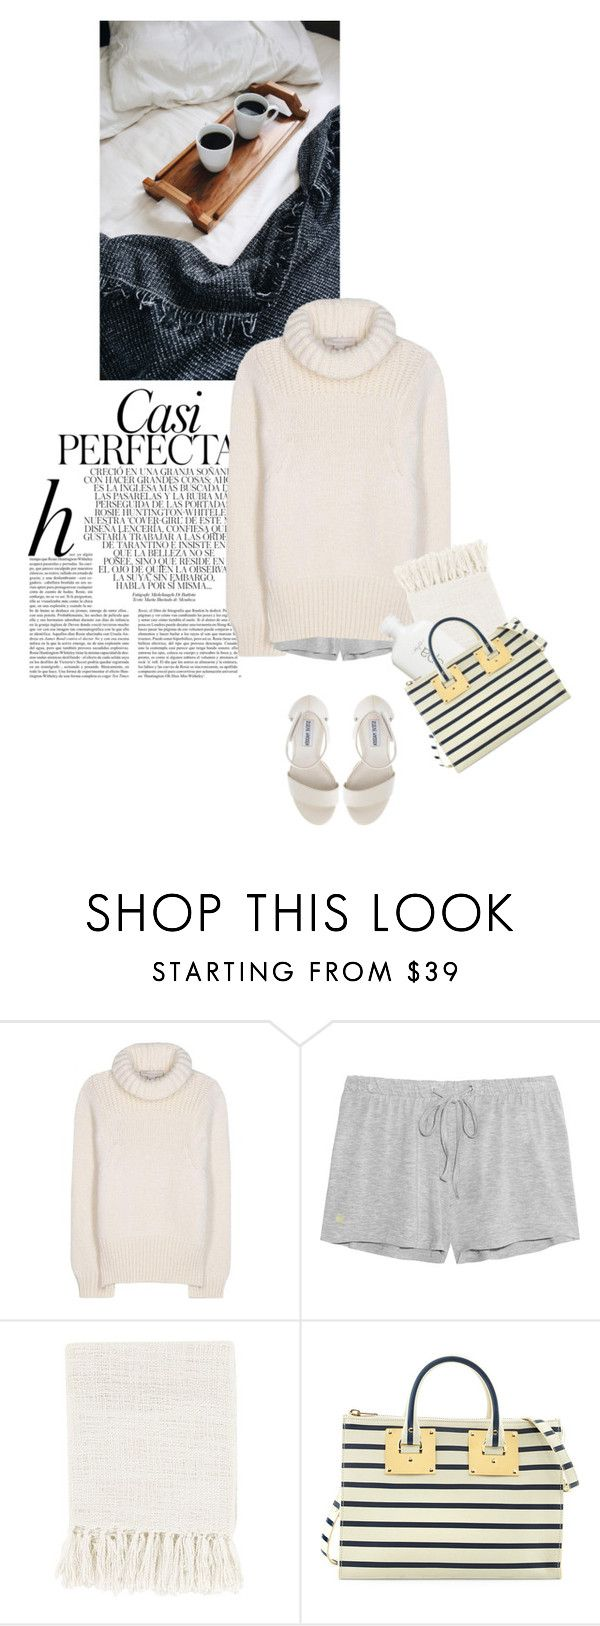 """cozy mood"" by rosa-loves-skittles ❤ liked on Polyvore featuring Whiteley, STELLA McCARTNEY, Elle Macpherson Intimates, Surya, Sophie Hulme and Steve Madden"